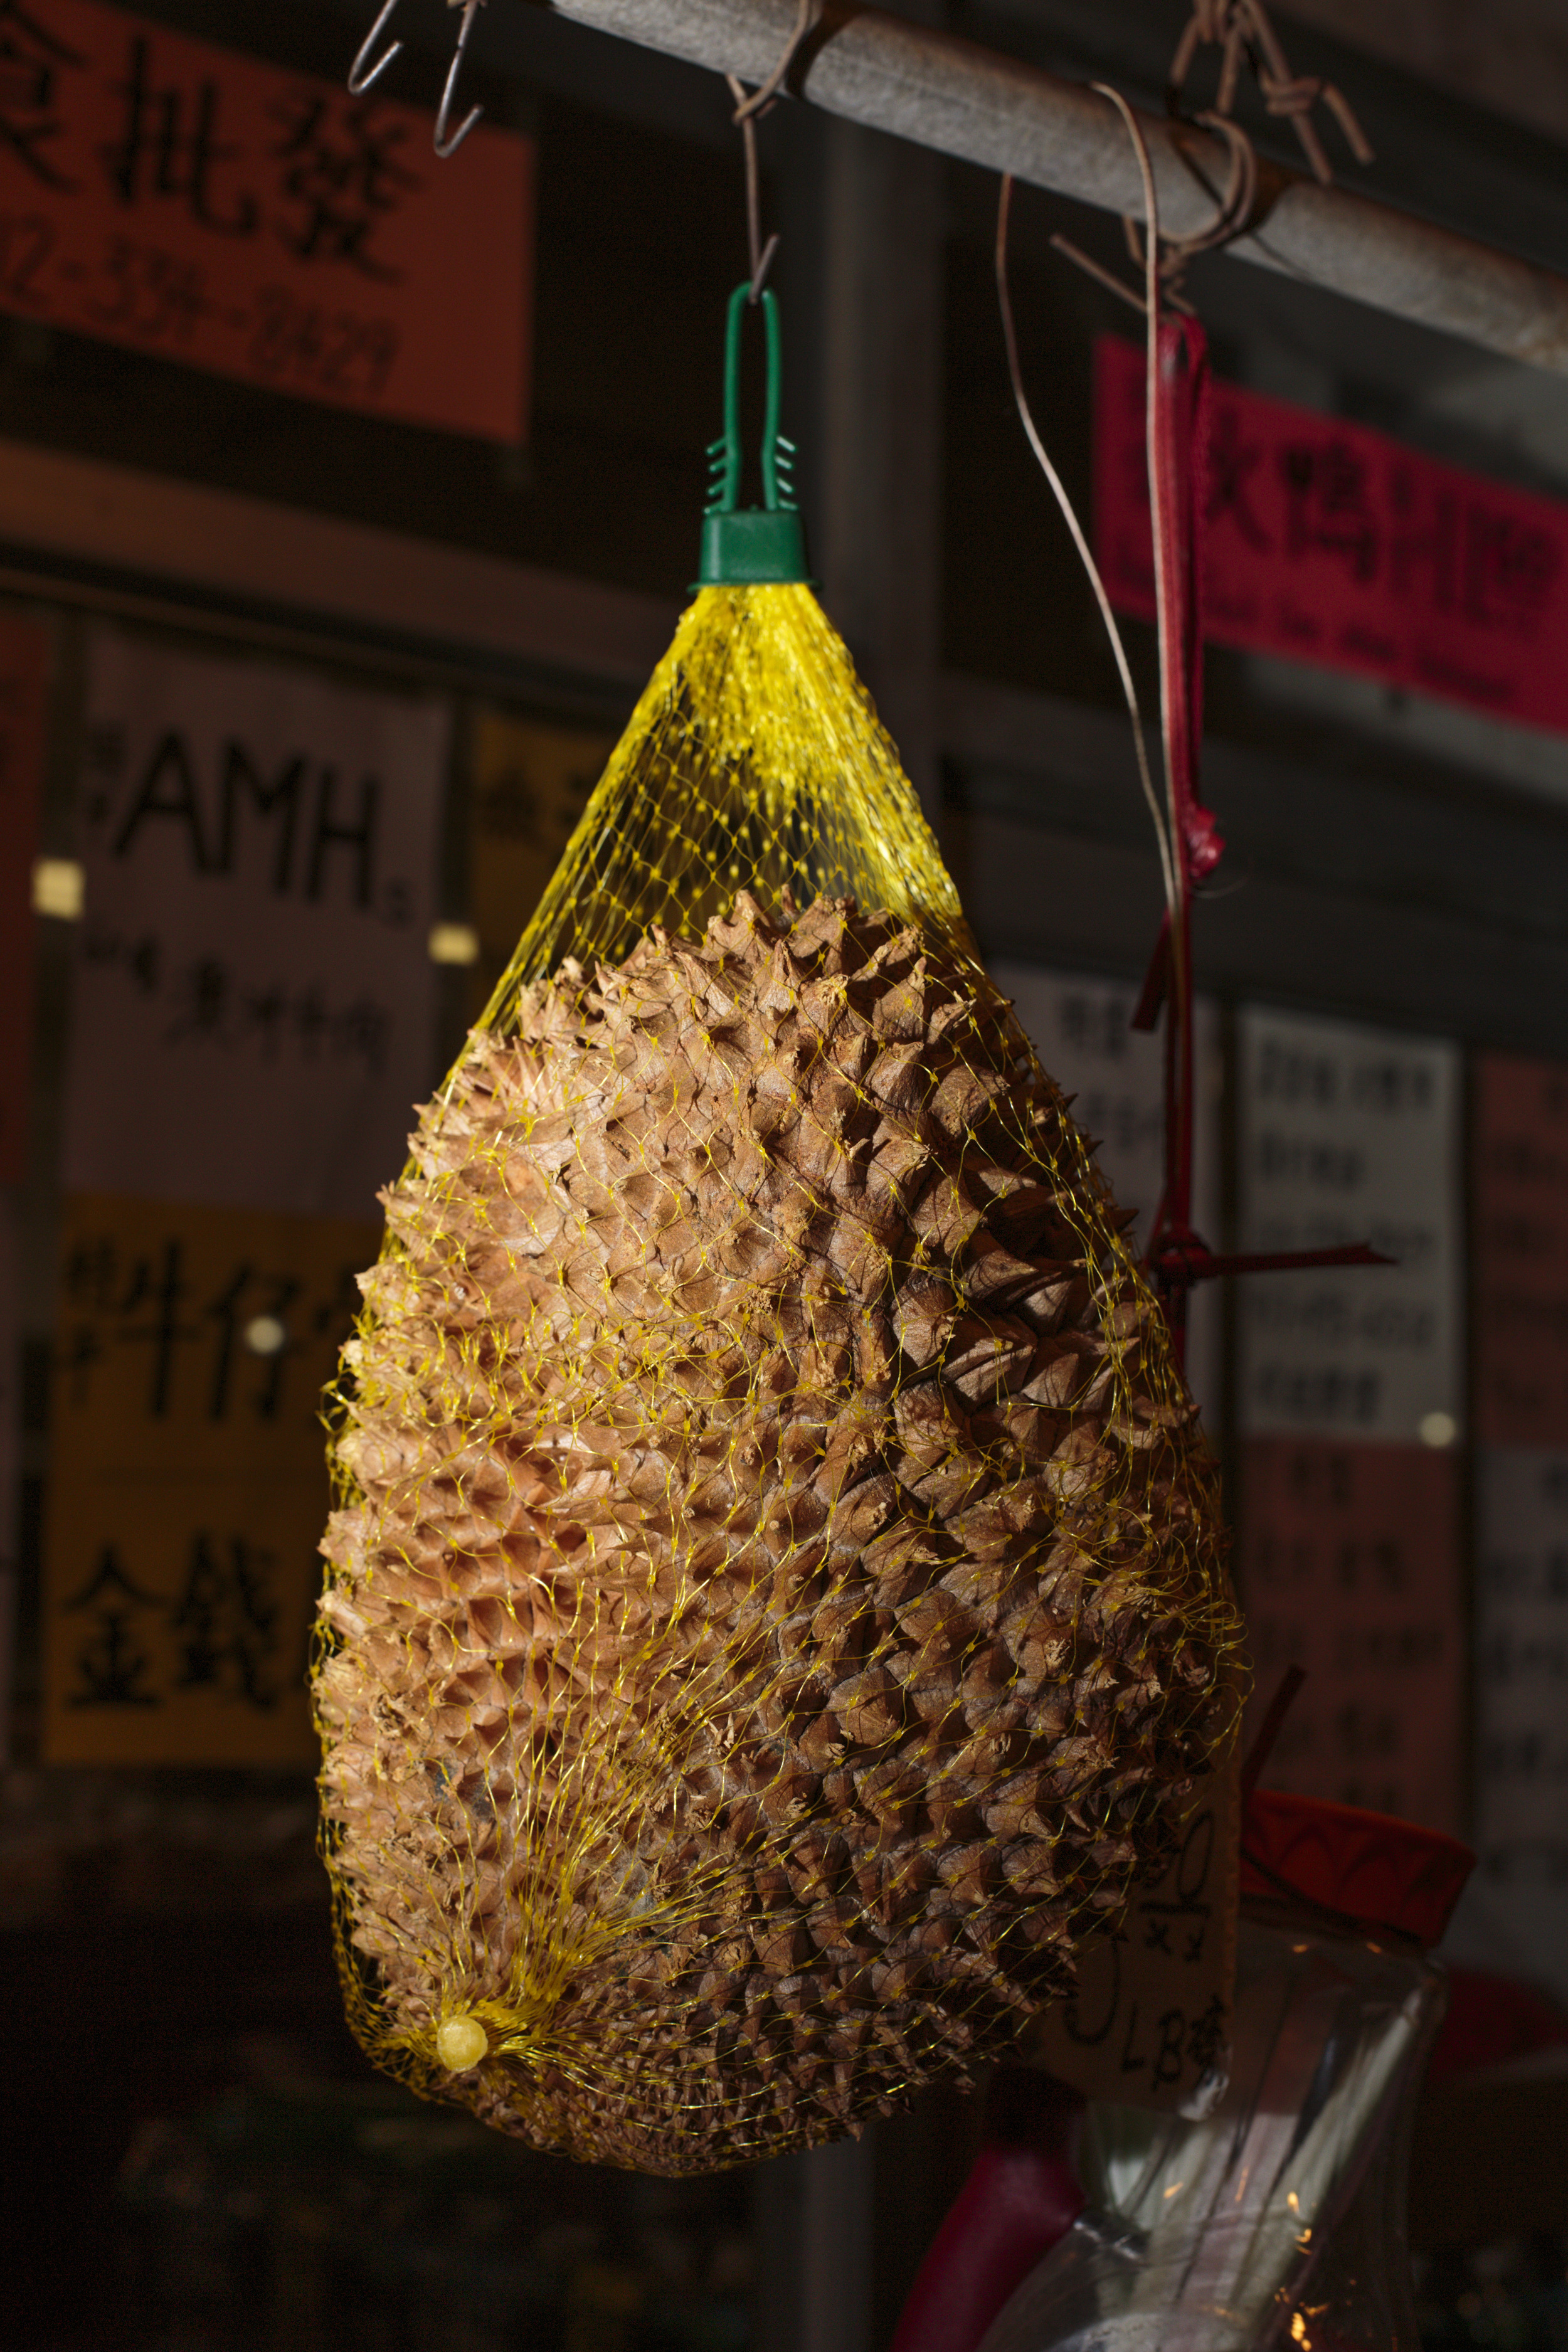 New York, USA - November 06, 2015: An exotic durian fruit is for sale in a Chinese market on the corner of Grand St and Eldridge St. The Chinese community in the Bowery, shares the Grand St with Little Saigon, the much smaller vietnamese equivalent of Chinatown. The Bowery, a street and neighborhood in Manhattan, once home for vagrants and a diversity of subcultures became the playground of artists, fancy bars and real-estate tycoons.